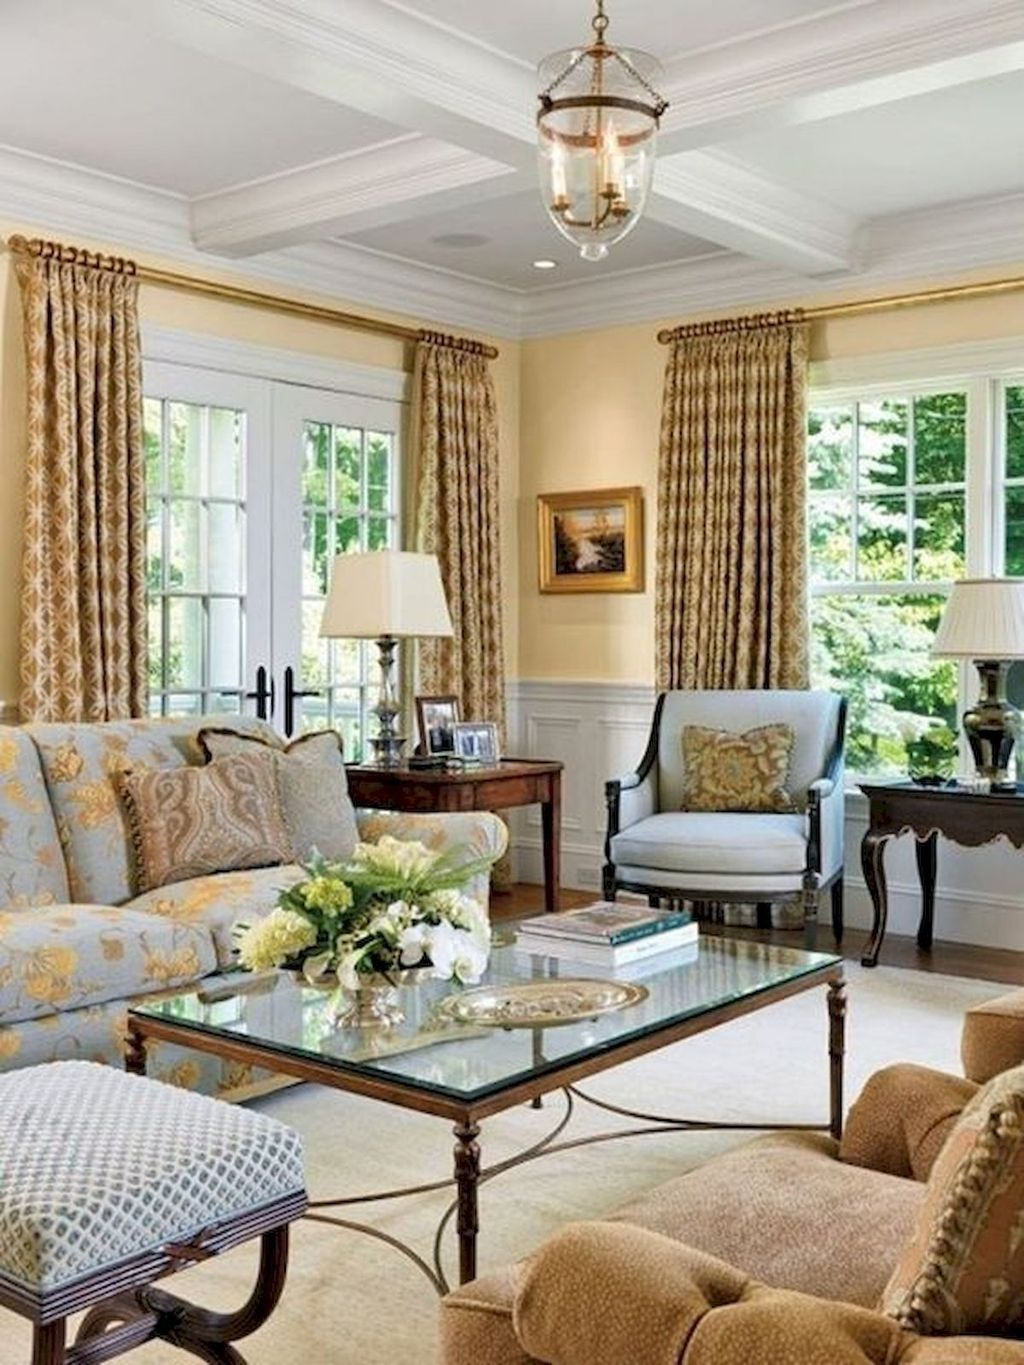 20 Fancy Home Decor That Blends Tradition And Trends Ideas Formal Living Room Decor Living Room Decor Traditional Country Living Room Design Traditional formal living room